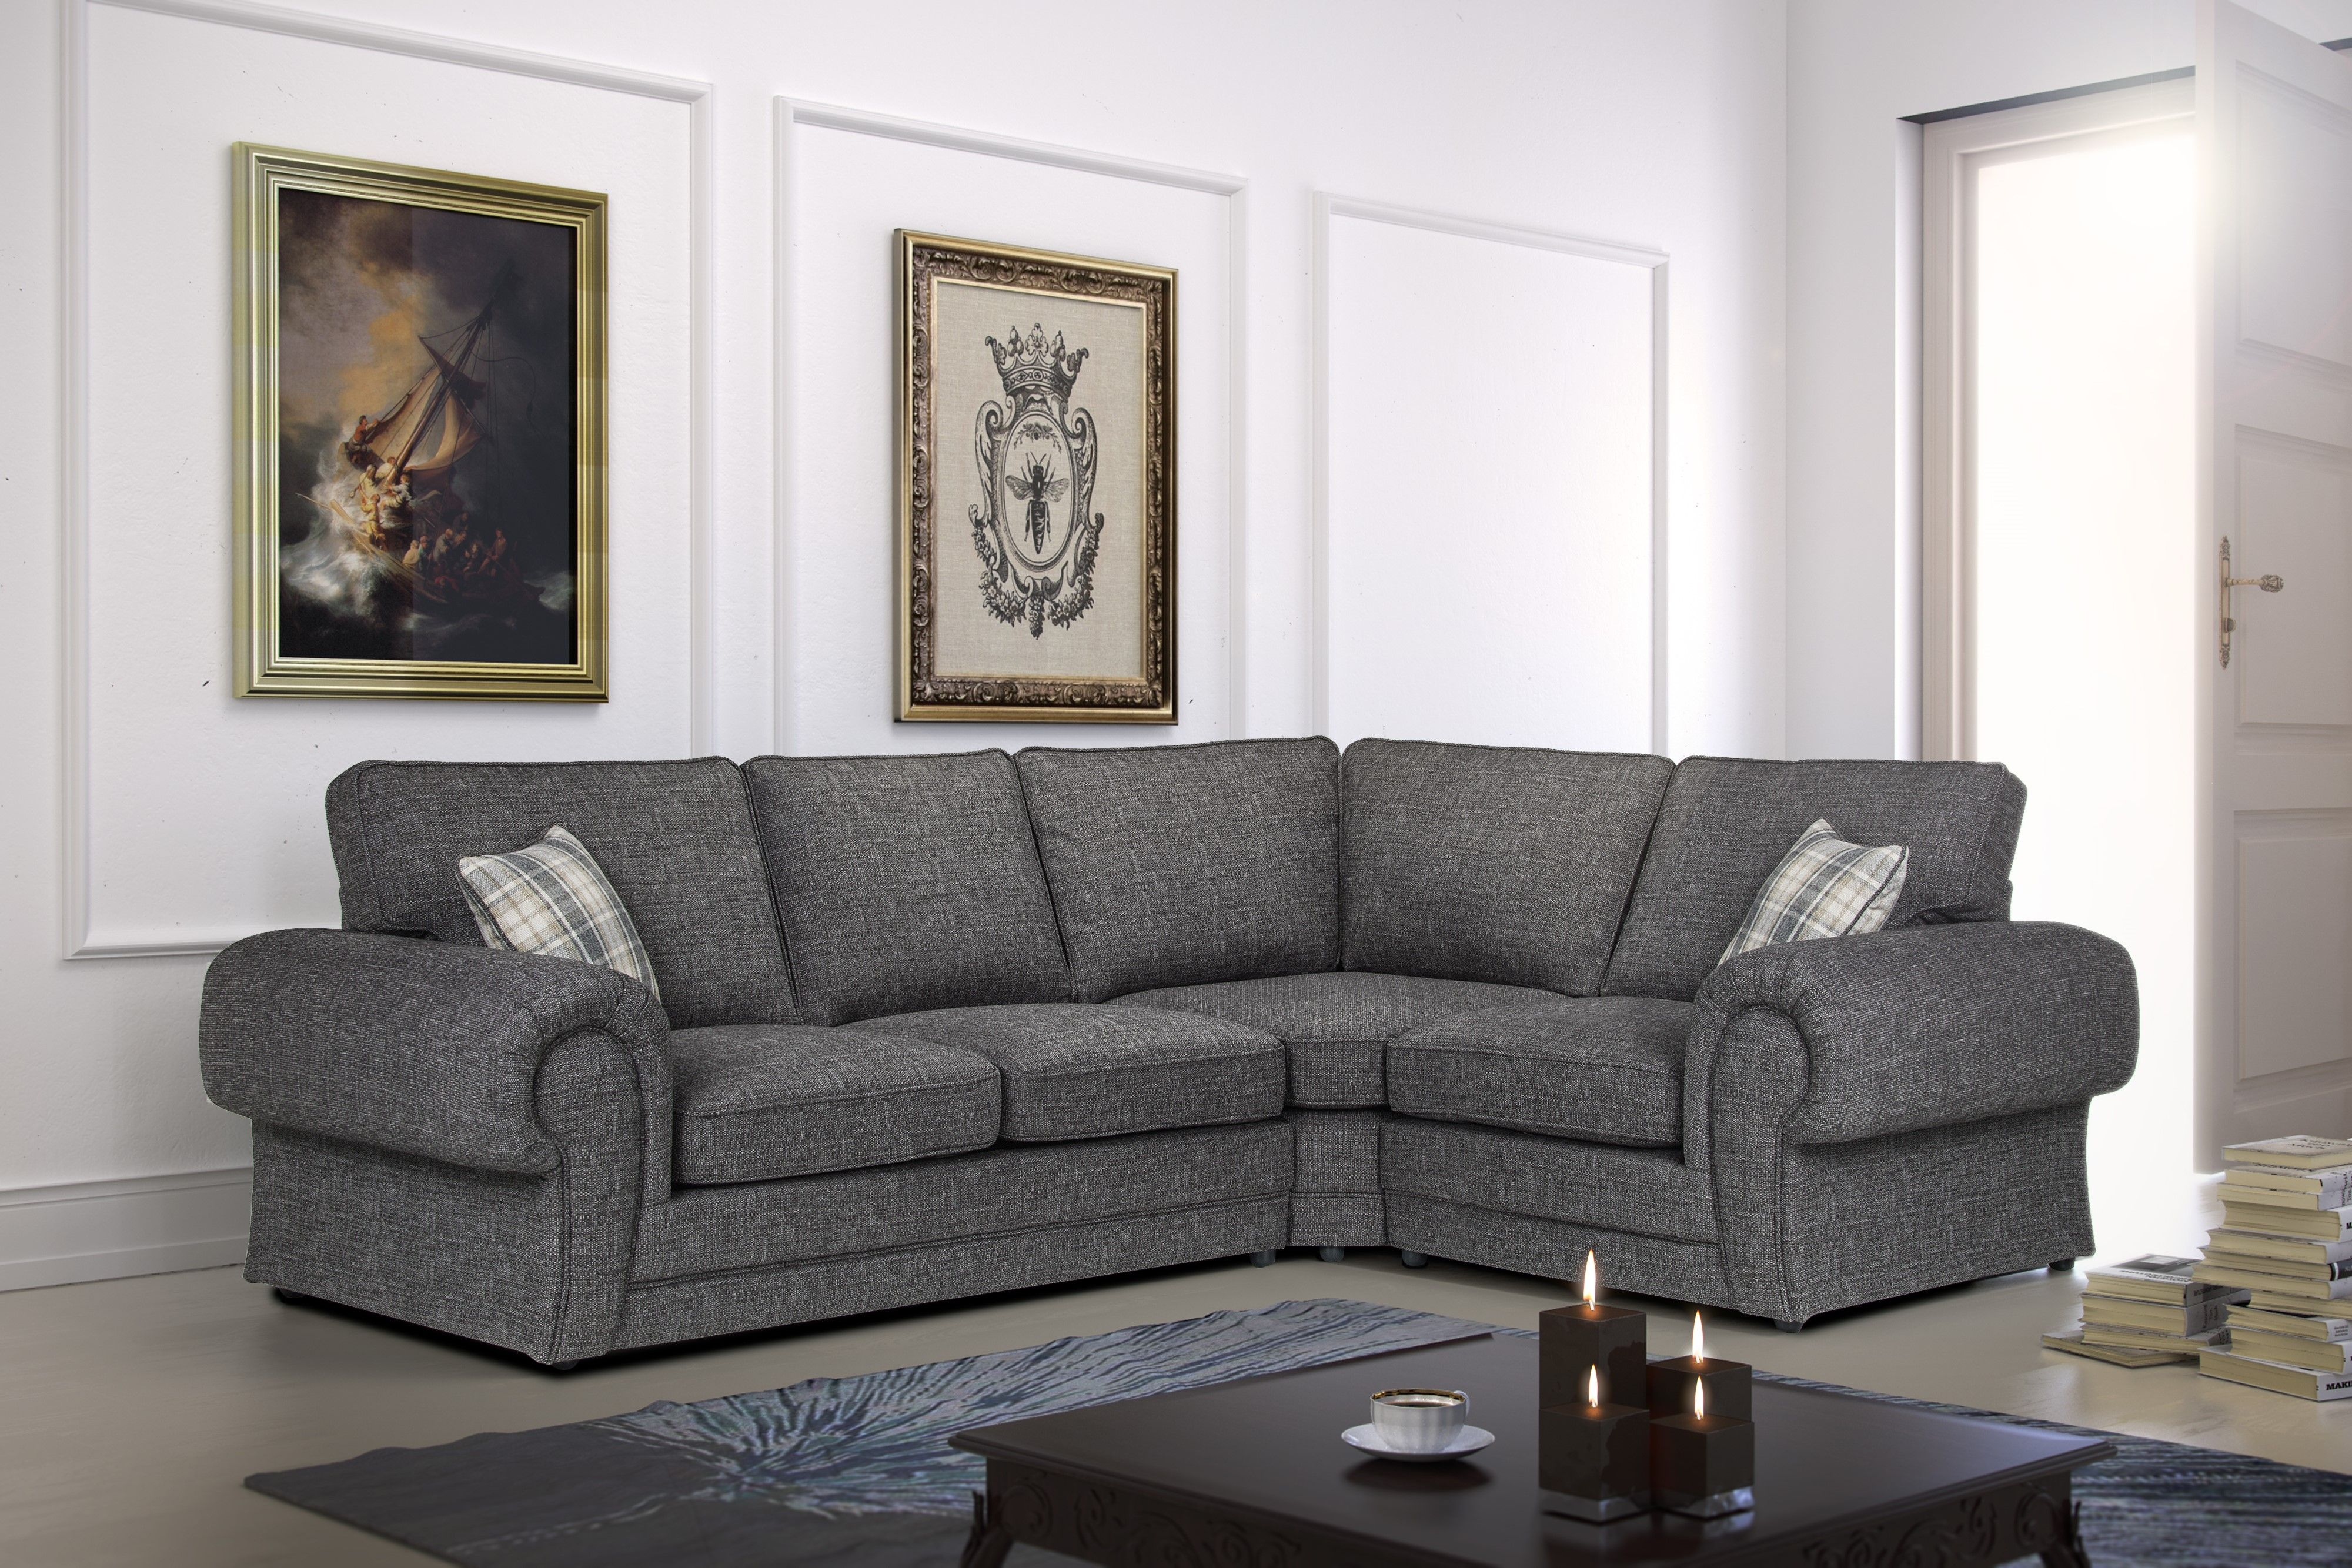 Here S The Flamenco One Of Our More Popular Ranges Shown Here In Our New Lisbon Fabric The Lisbon Fabric Is A So Deep Seating Fabric Sofa Sit Back And Relax